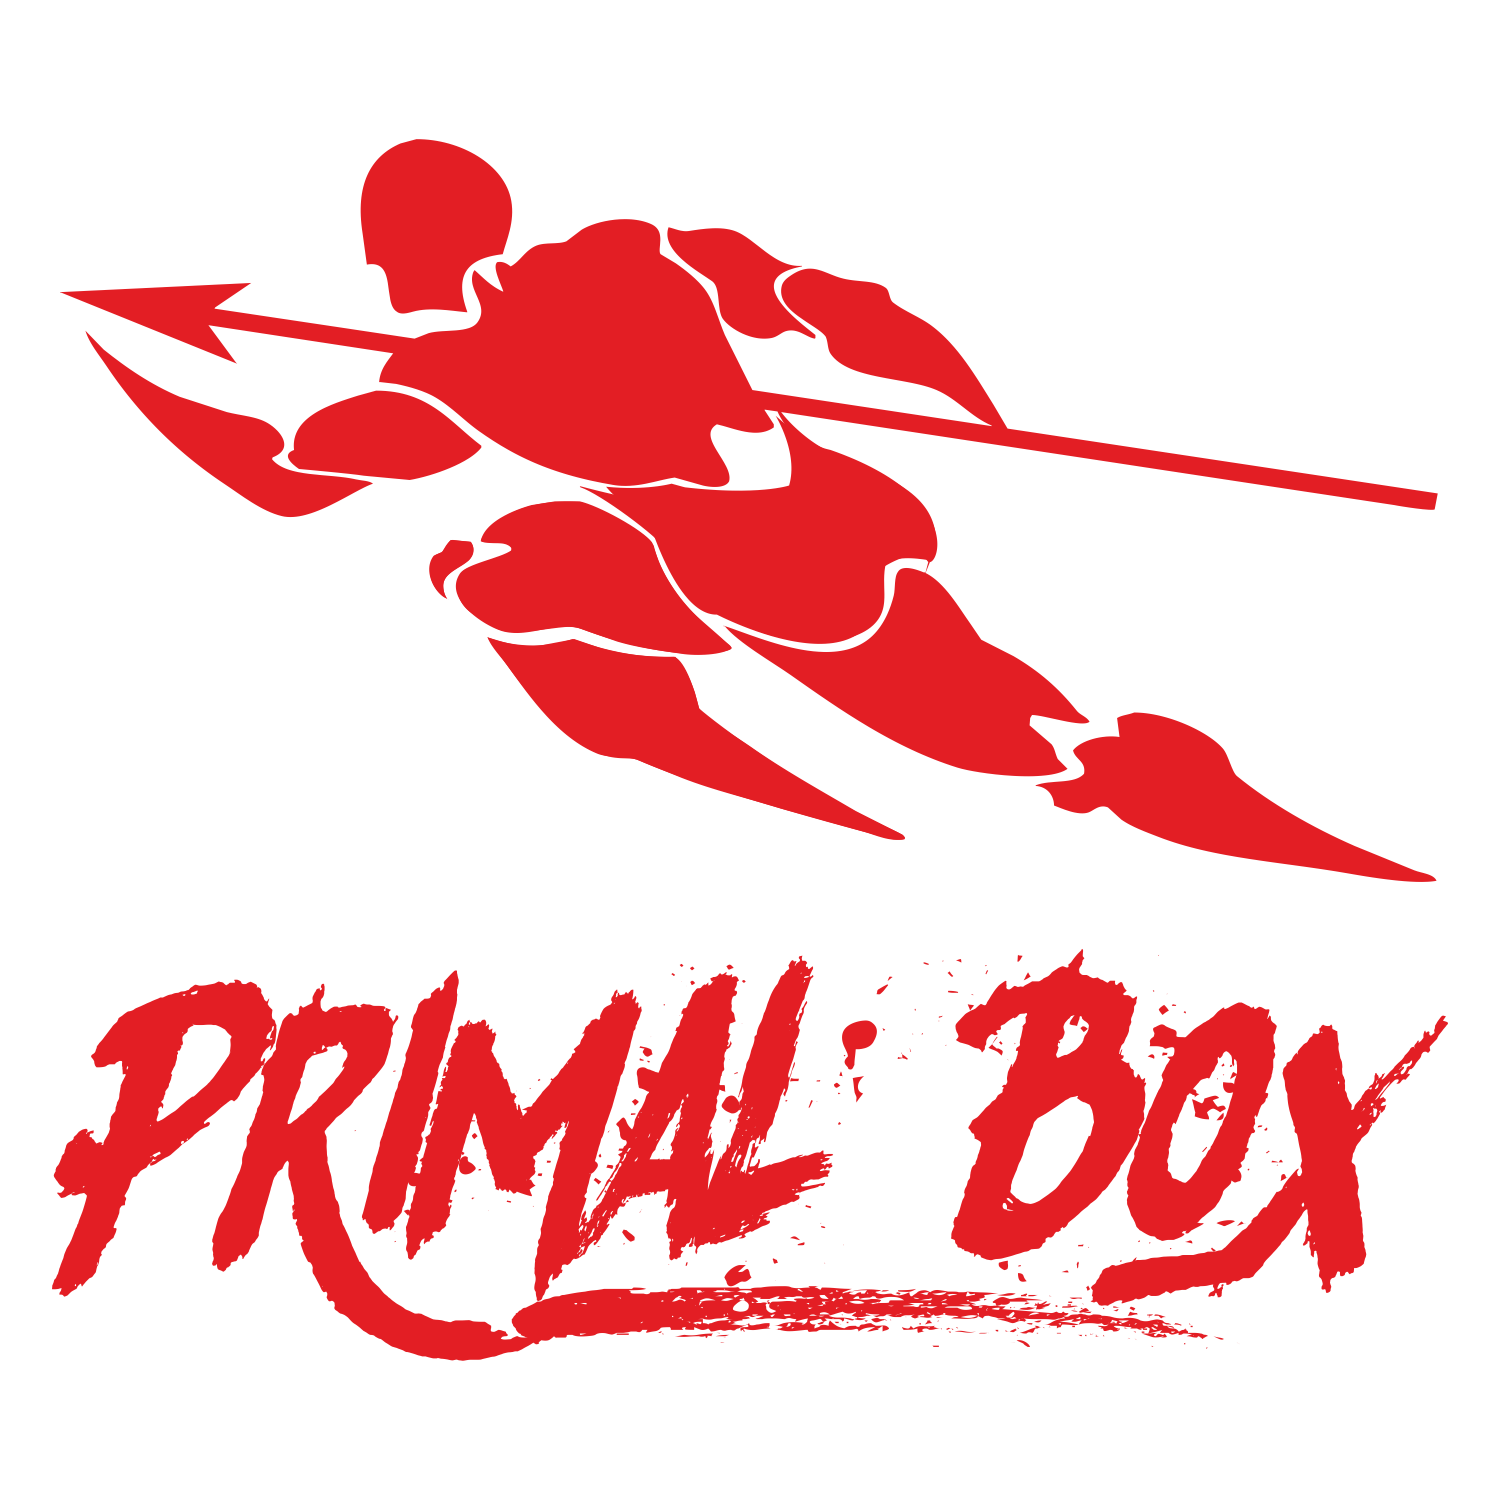 Primal Box - CrossFitness Requena